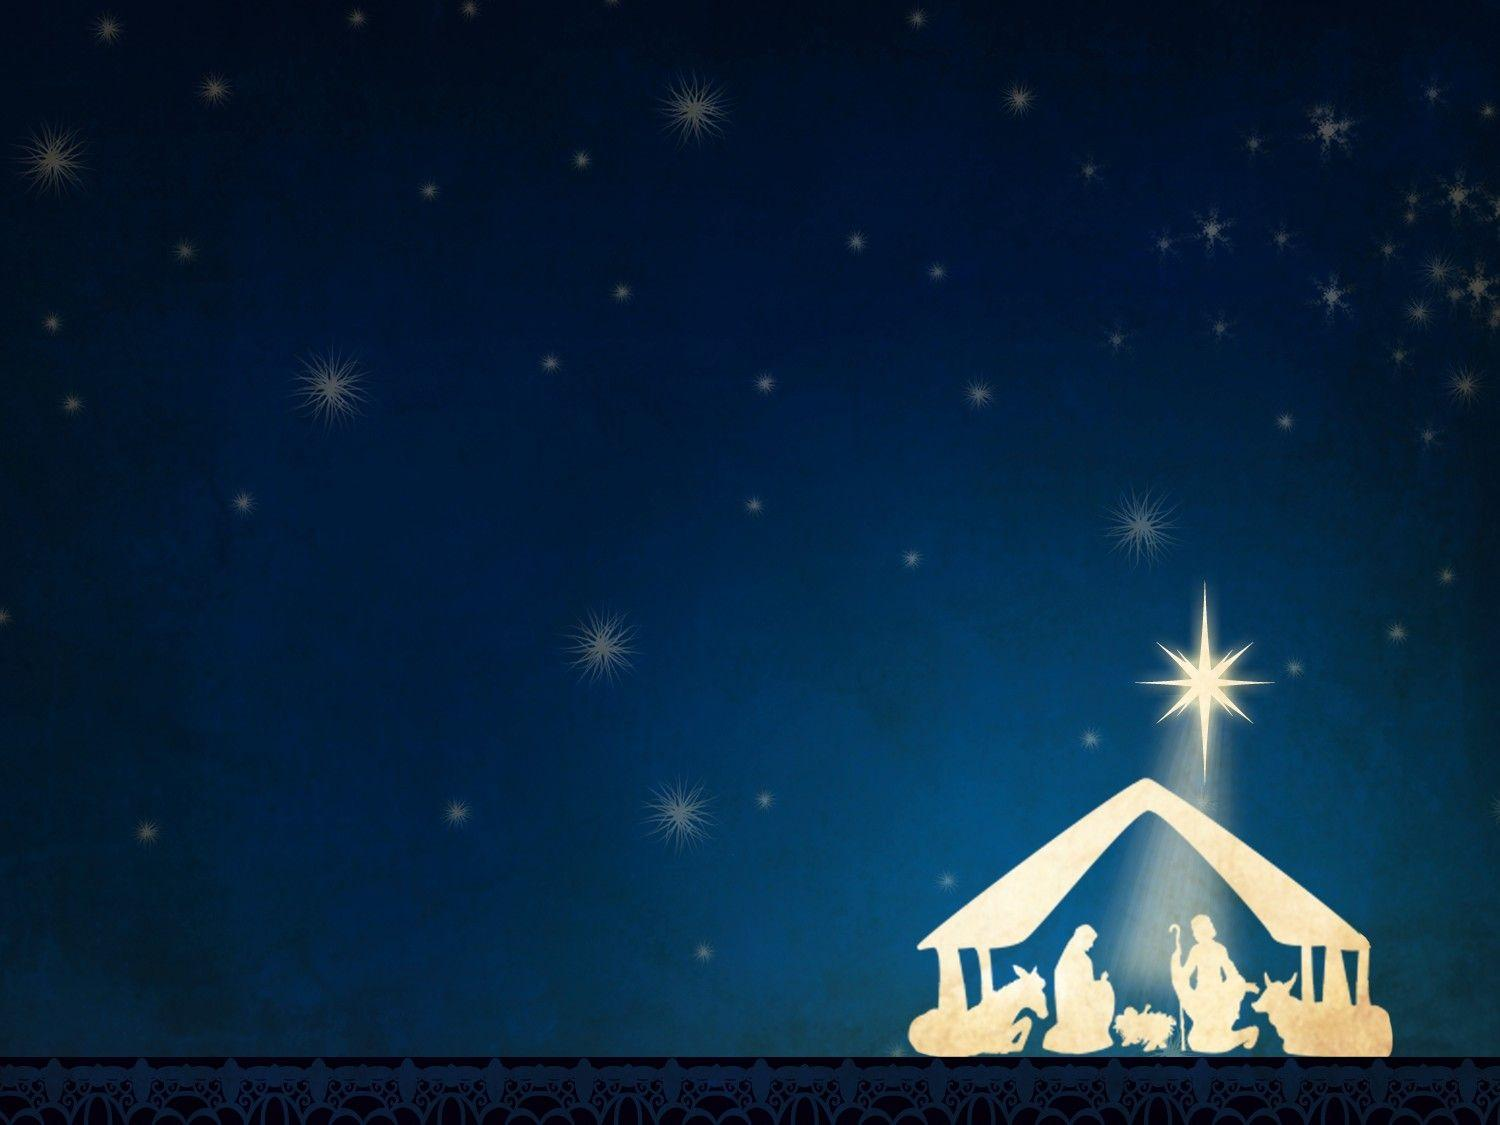 Nativity Scene Backgrounds 1500x1125